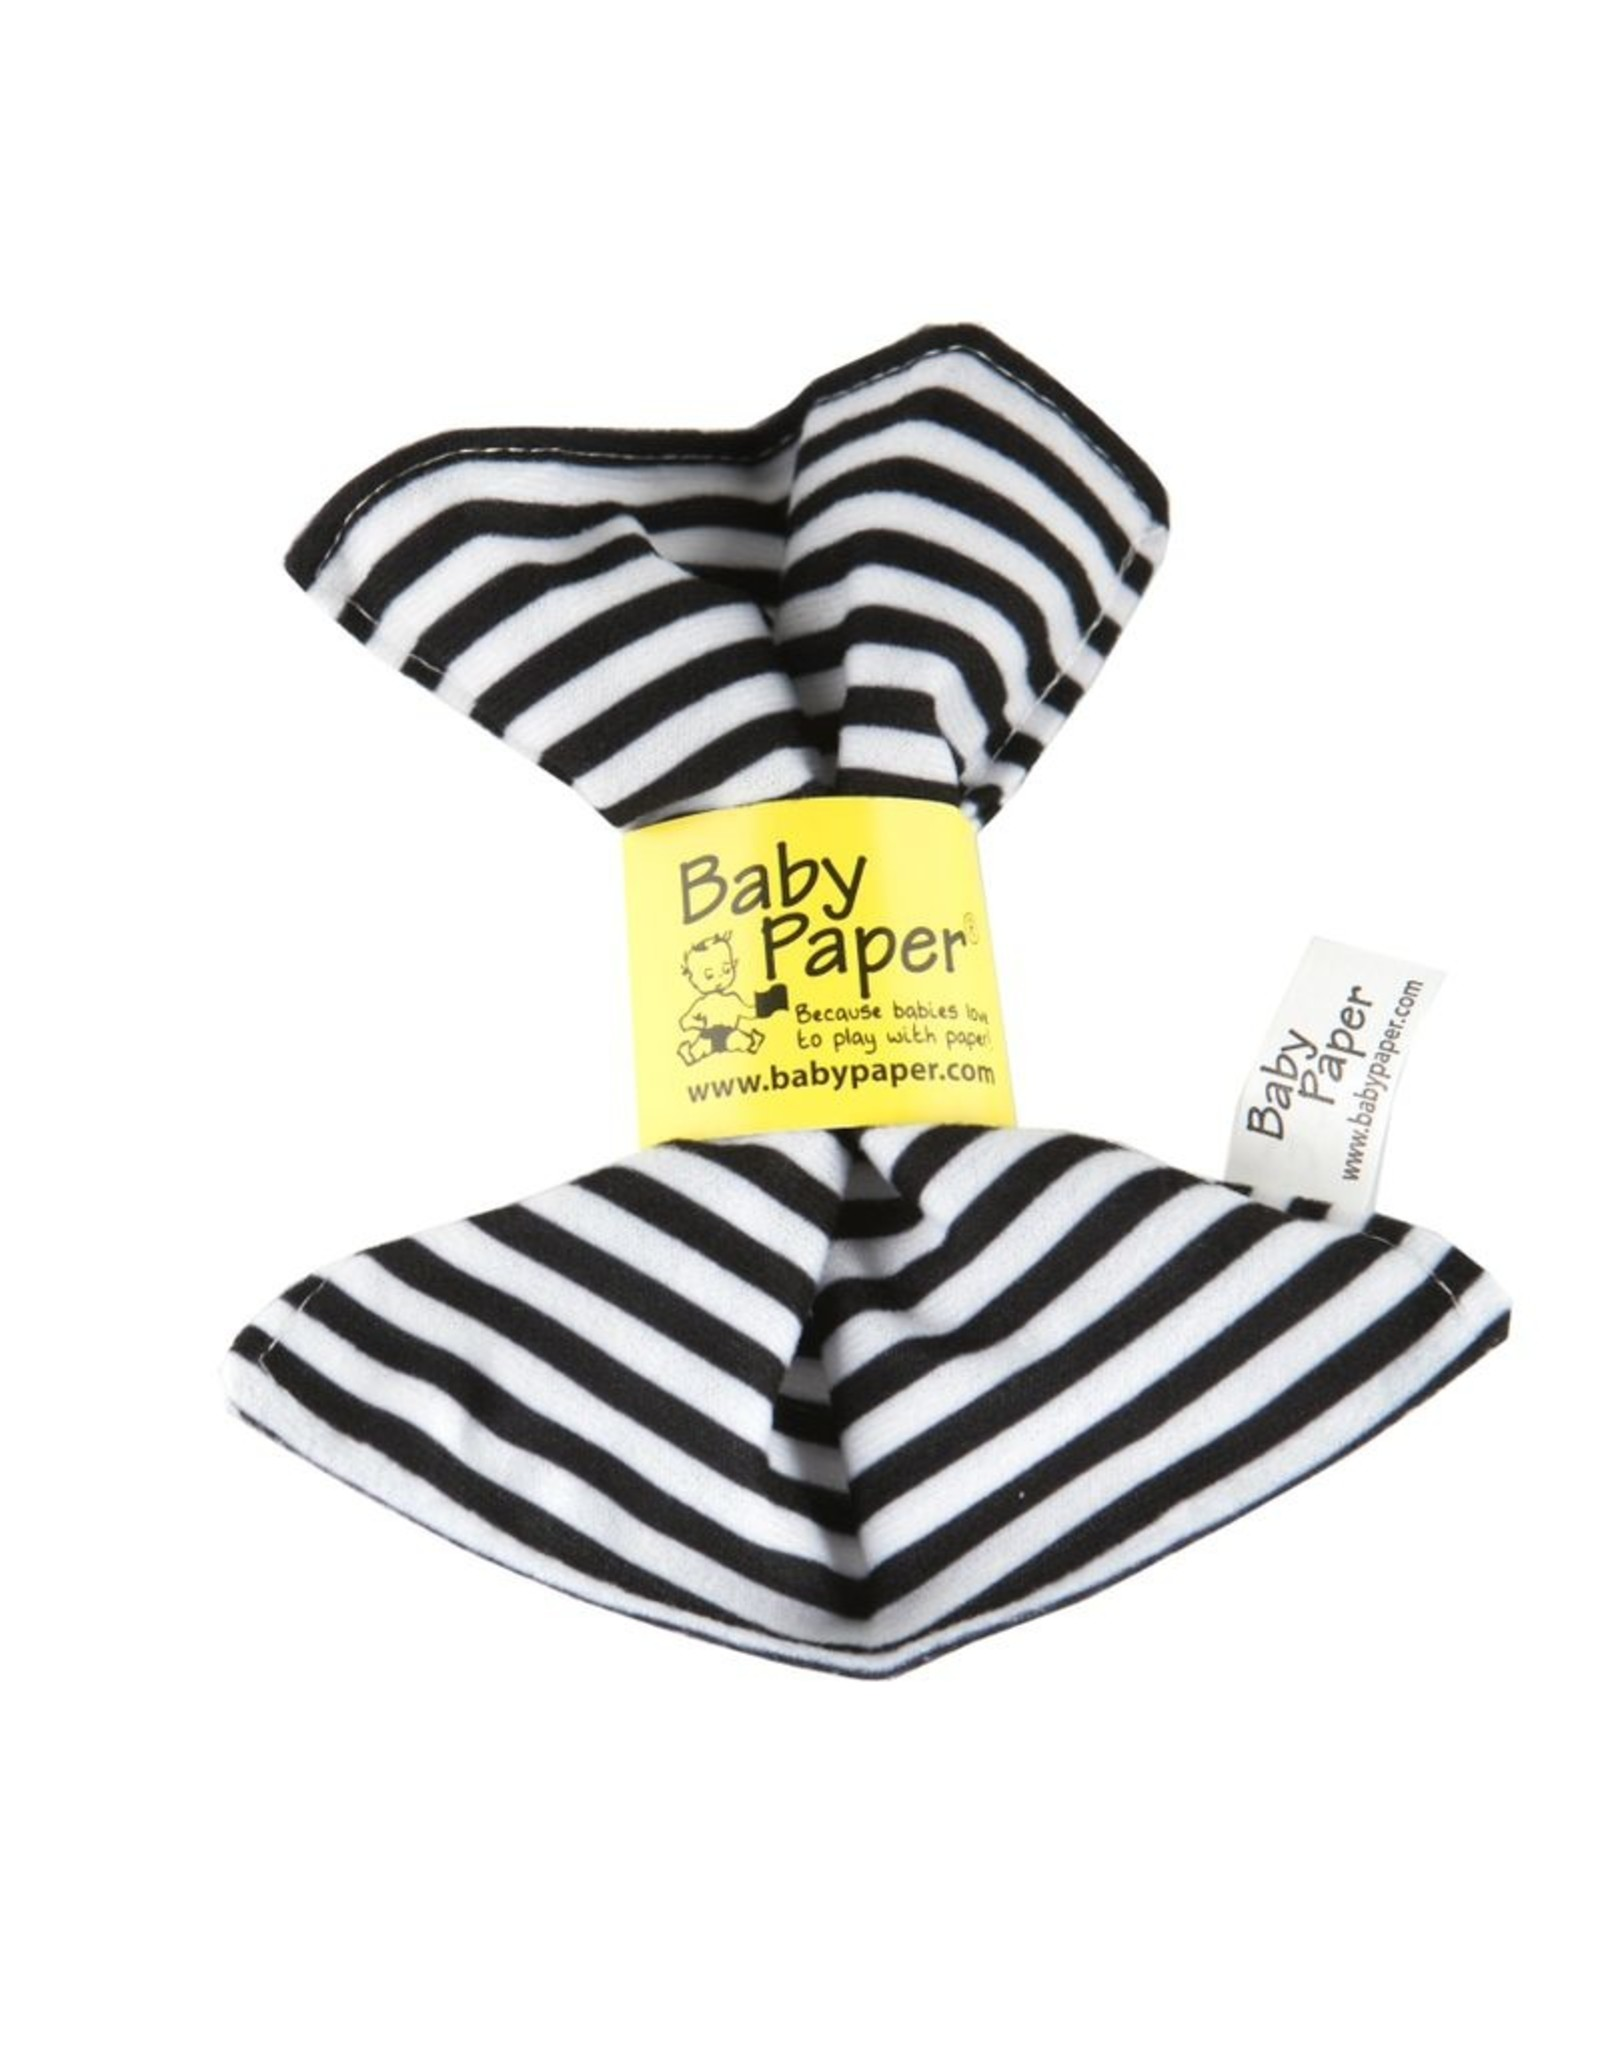 Baby Paper Crinkle Baby Paper